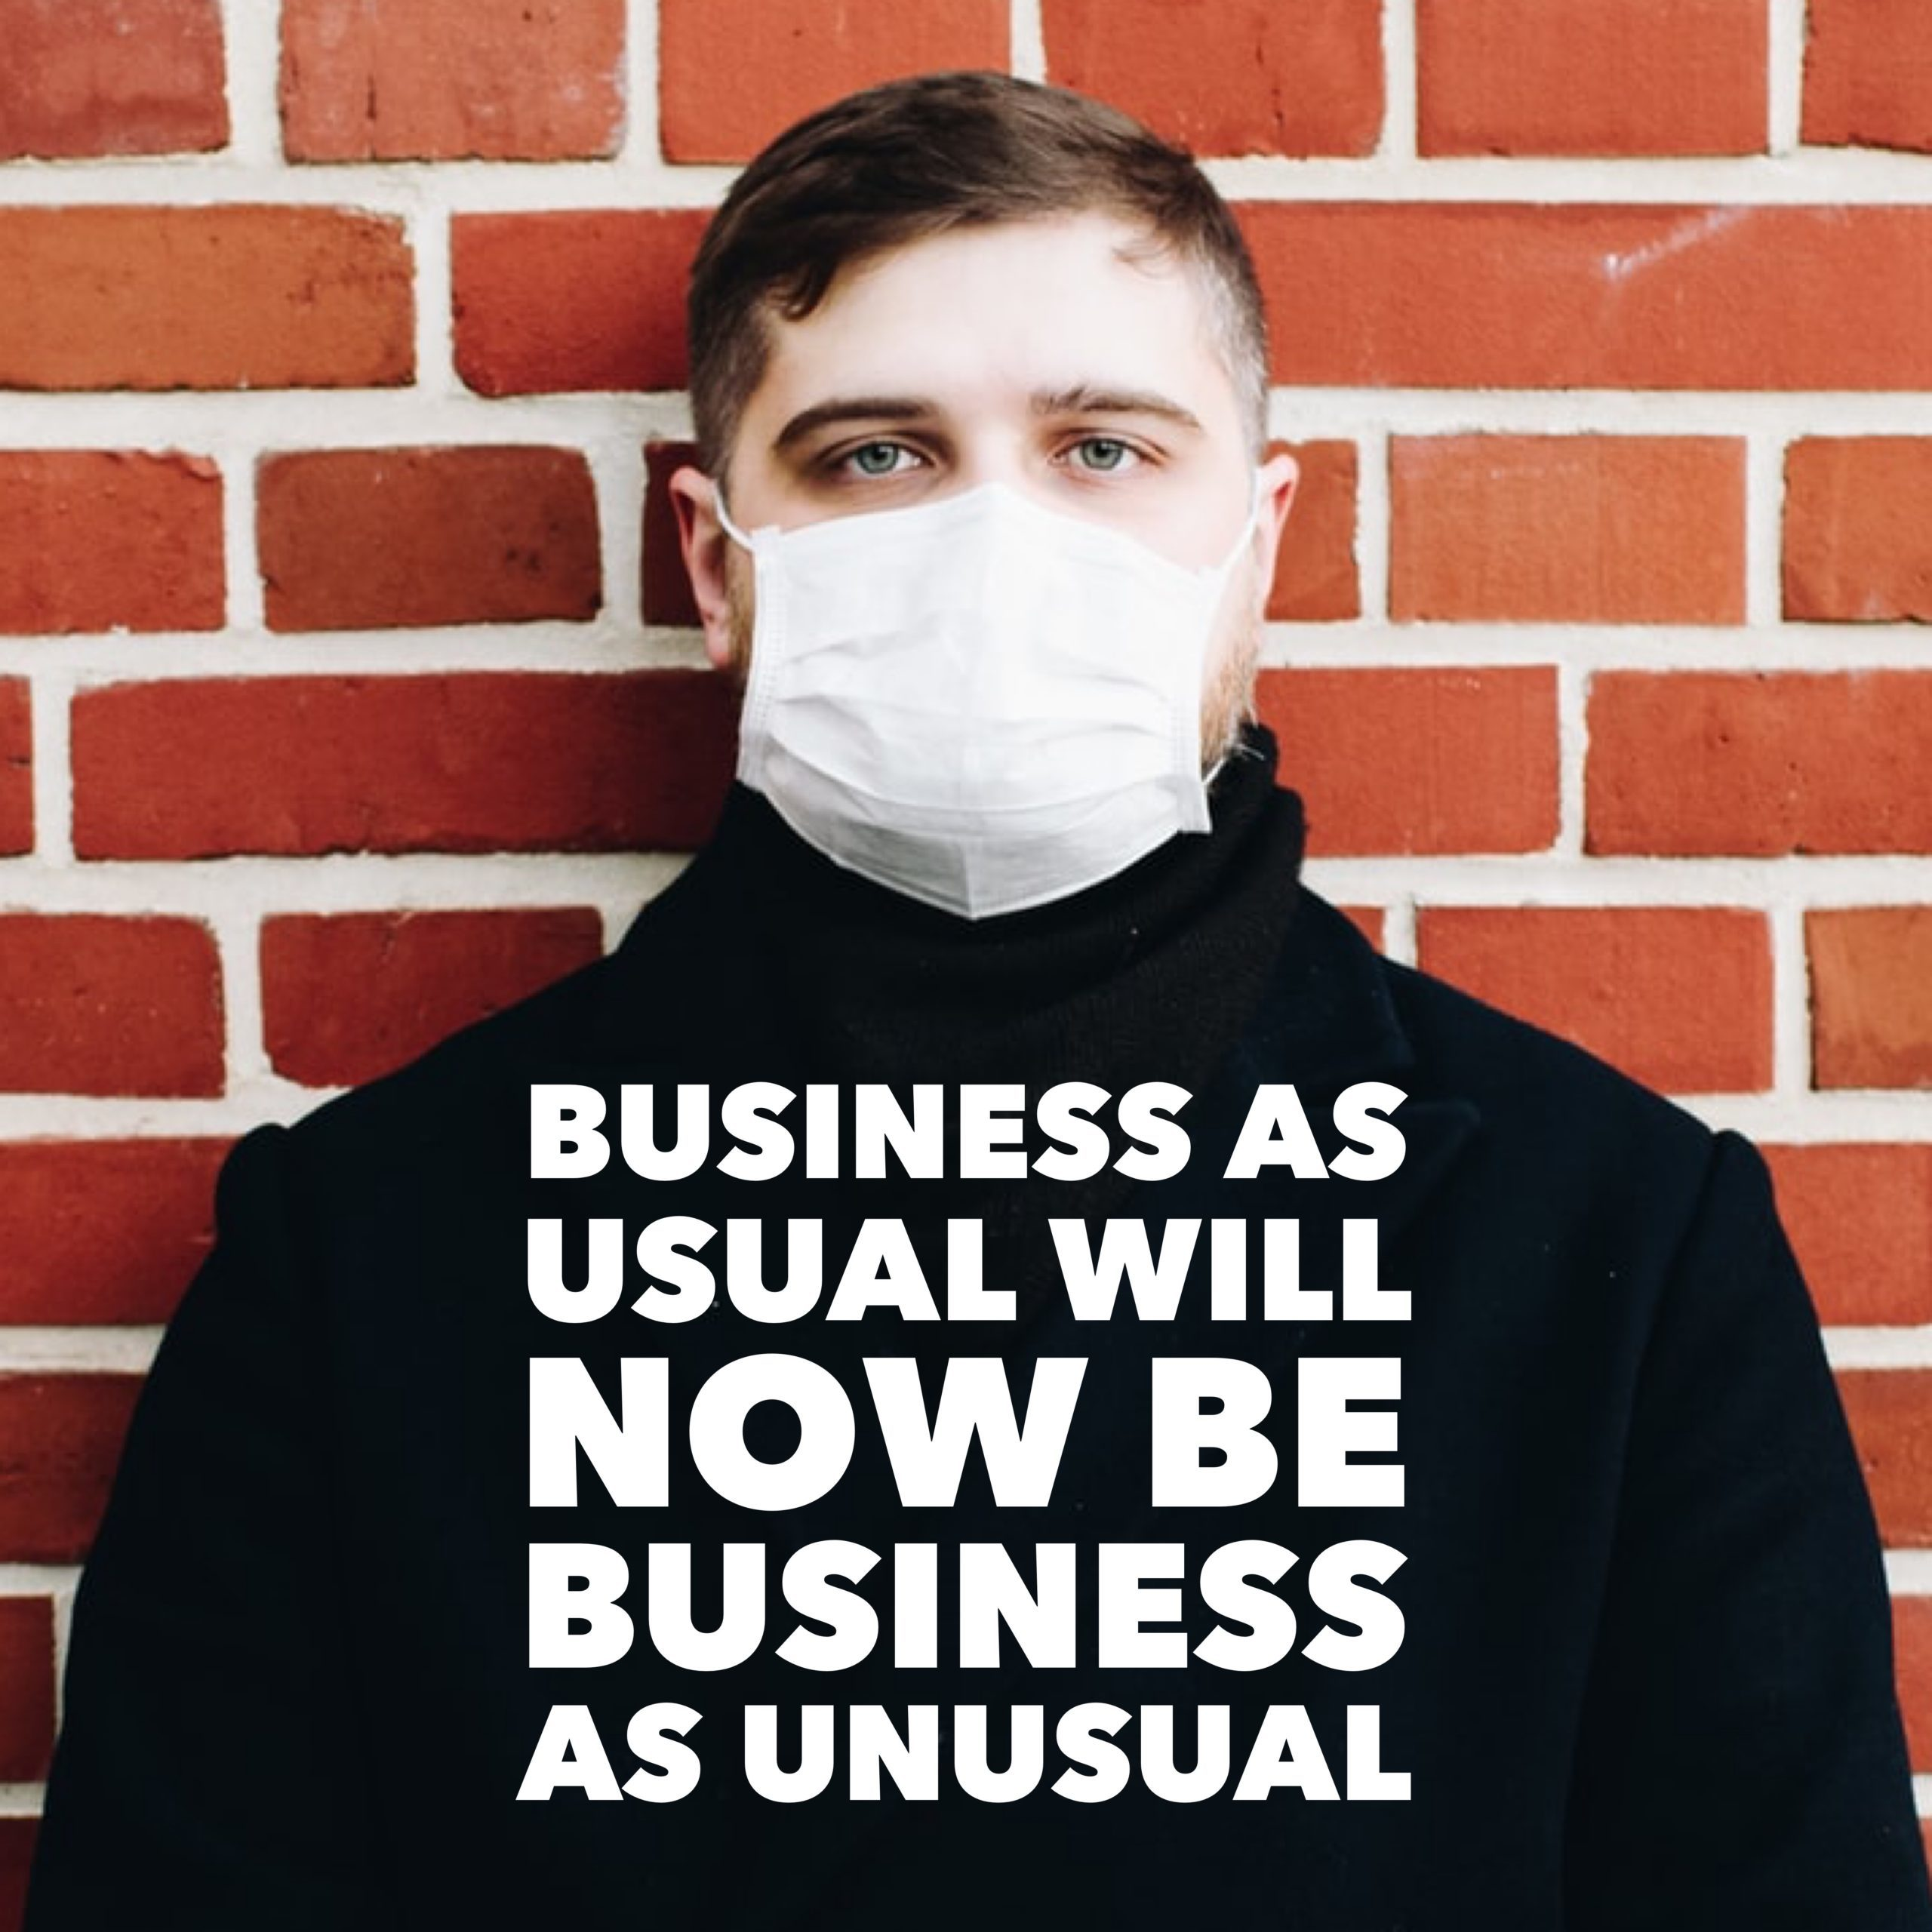 Business as Usual Will Now be Business as Unusual.